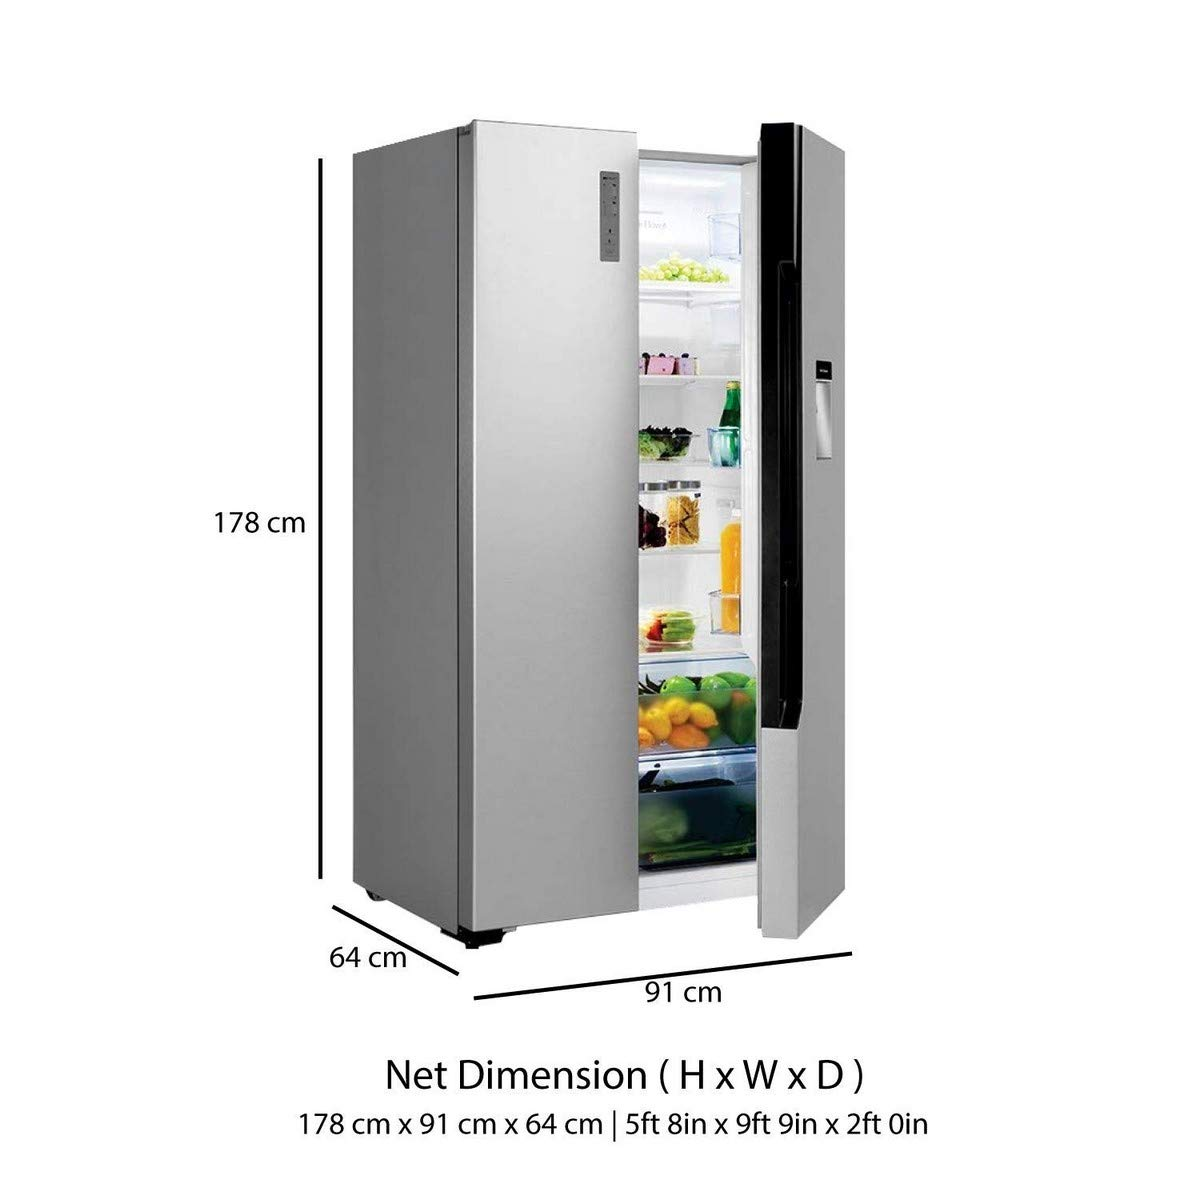 bpl refrigerator wiring diagram trusted wiring diagrams dometic refrigerator  wiring diagram bpl 564 l frost free